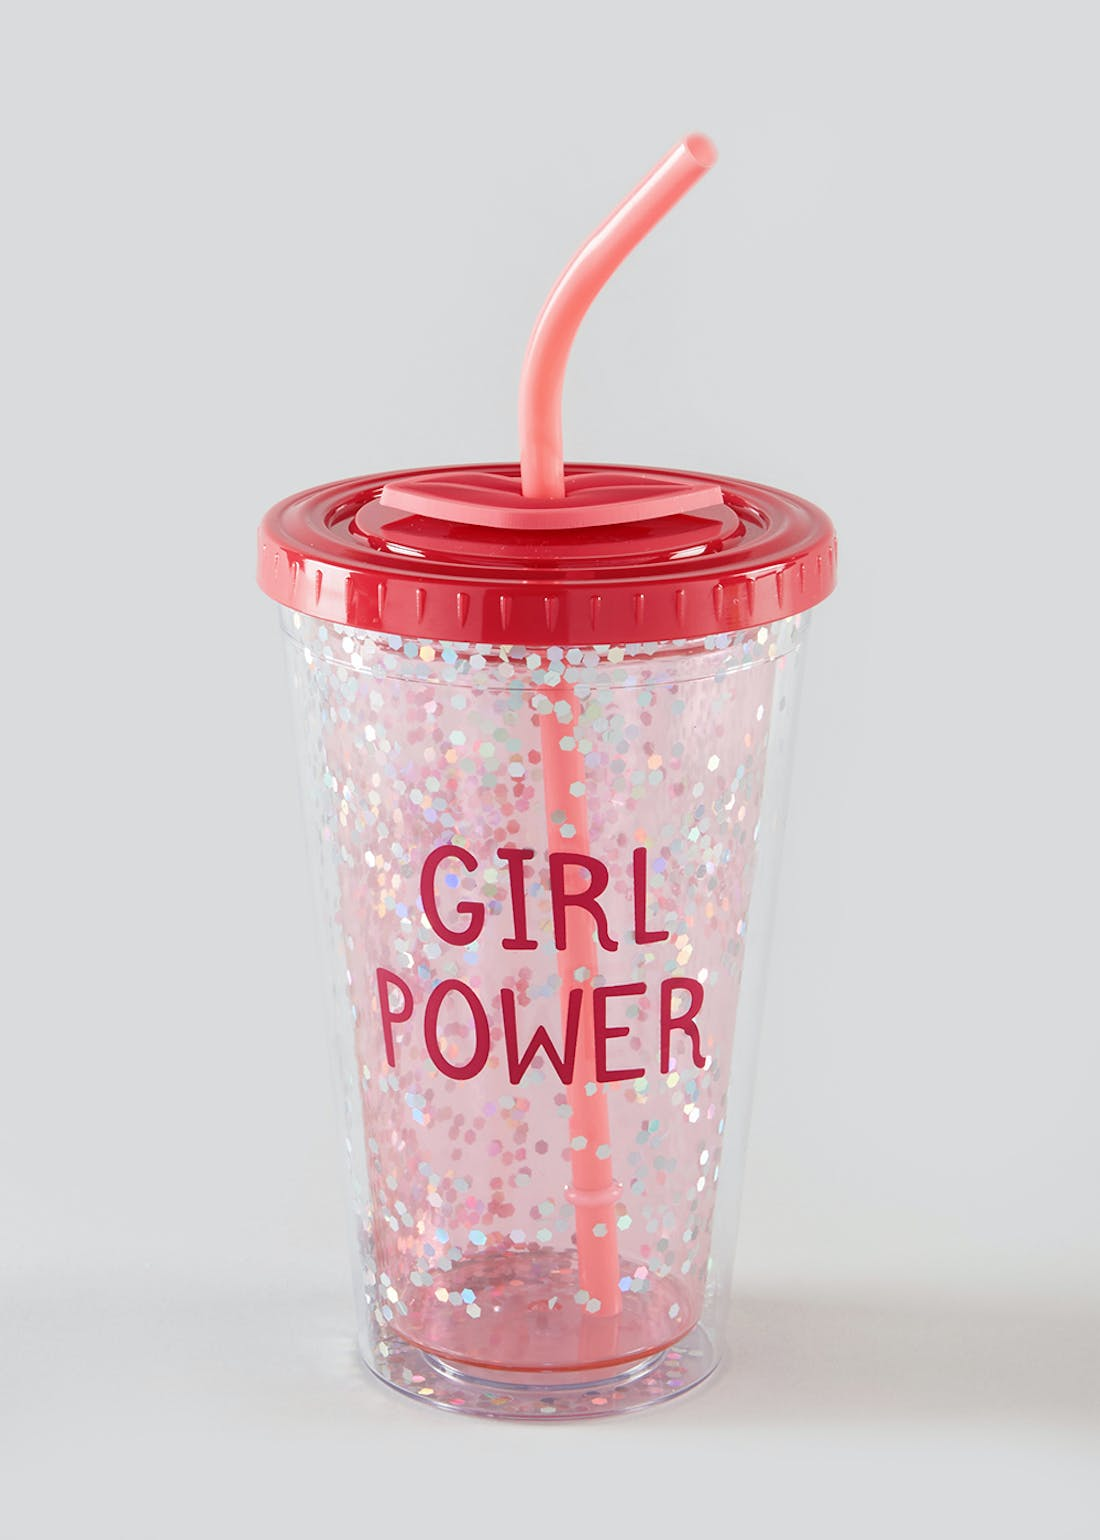 Girl Power Travel Cup with Straw (22cm x 10cm x 10cm)